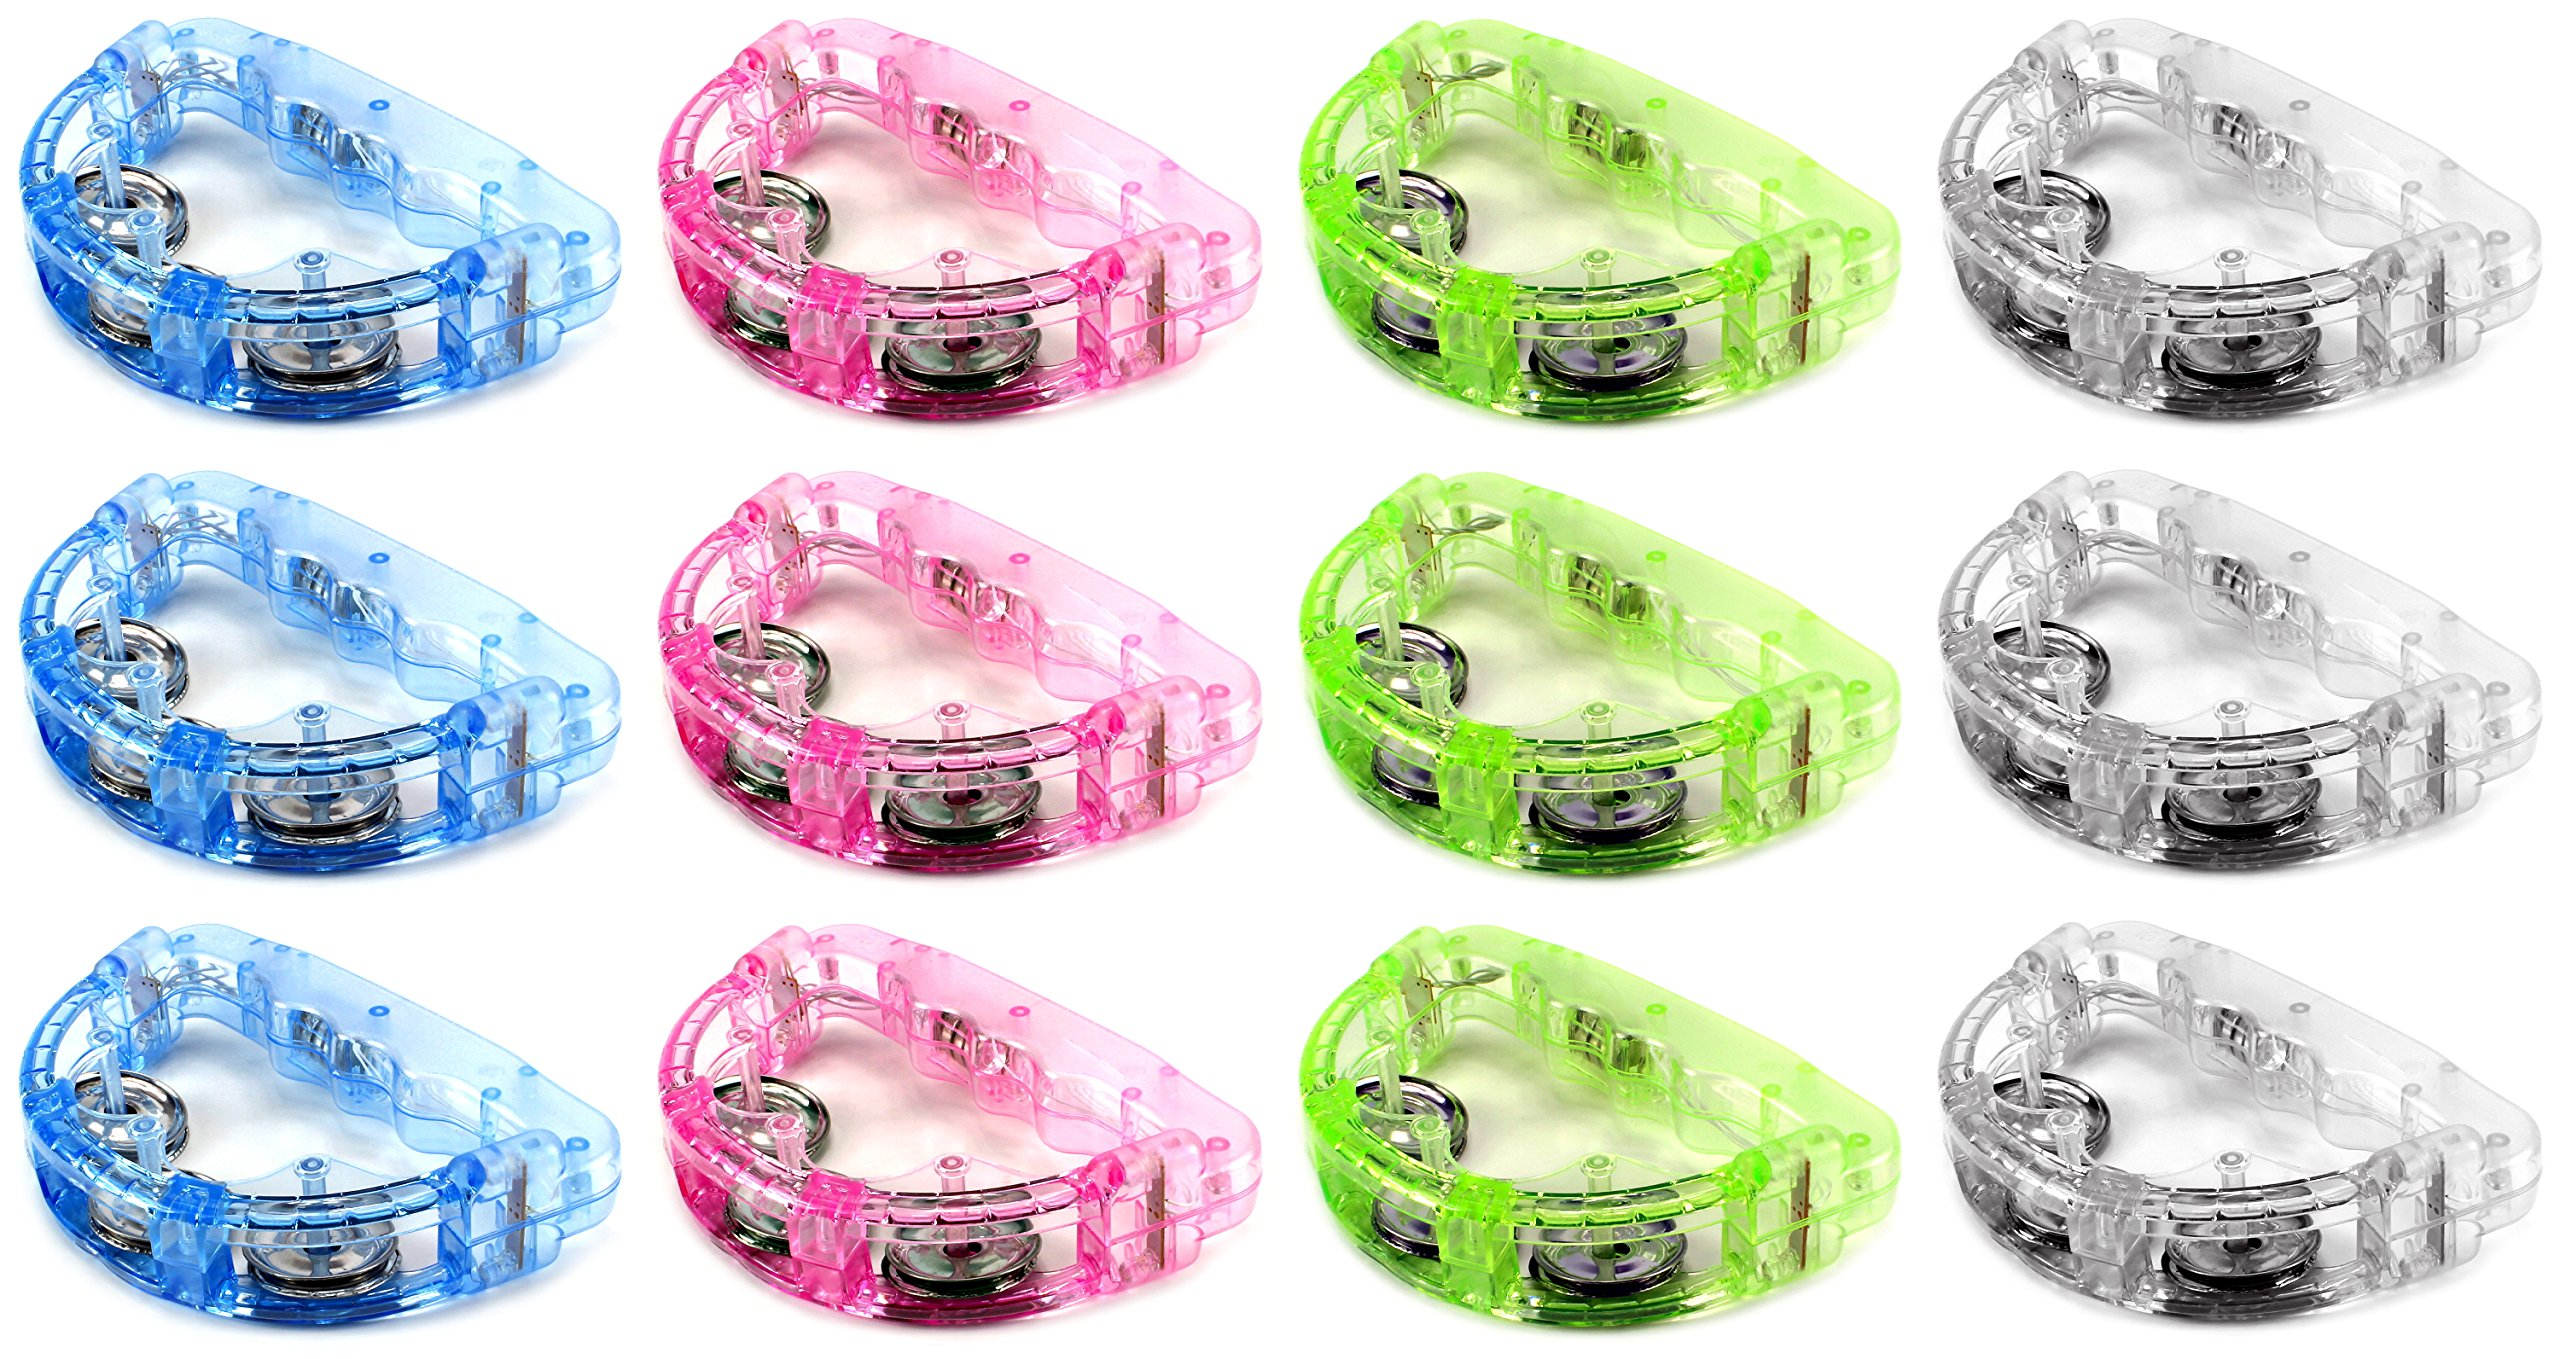 Set of 12 Flashing Light Tambourine Children's Kid's Novelty Toy Noise Maker w/ 3 Light Patterns, Perfect for Party Favors, Goodie Bags (Colors May Vary) by Toy Noise Makers